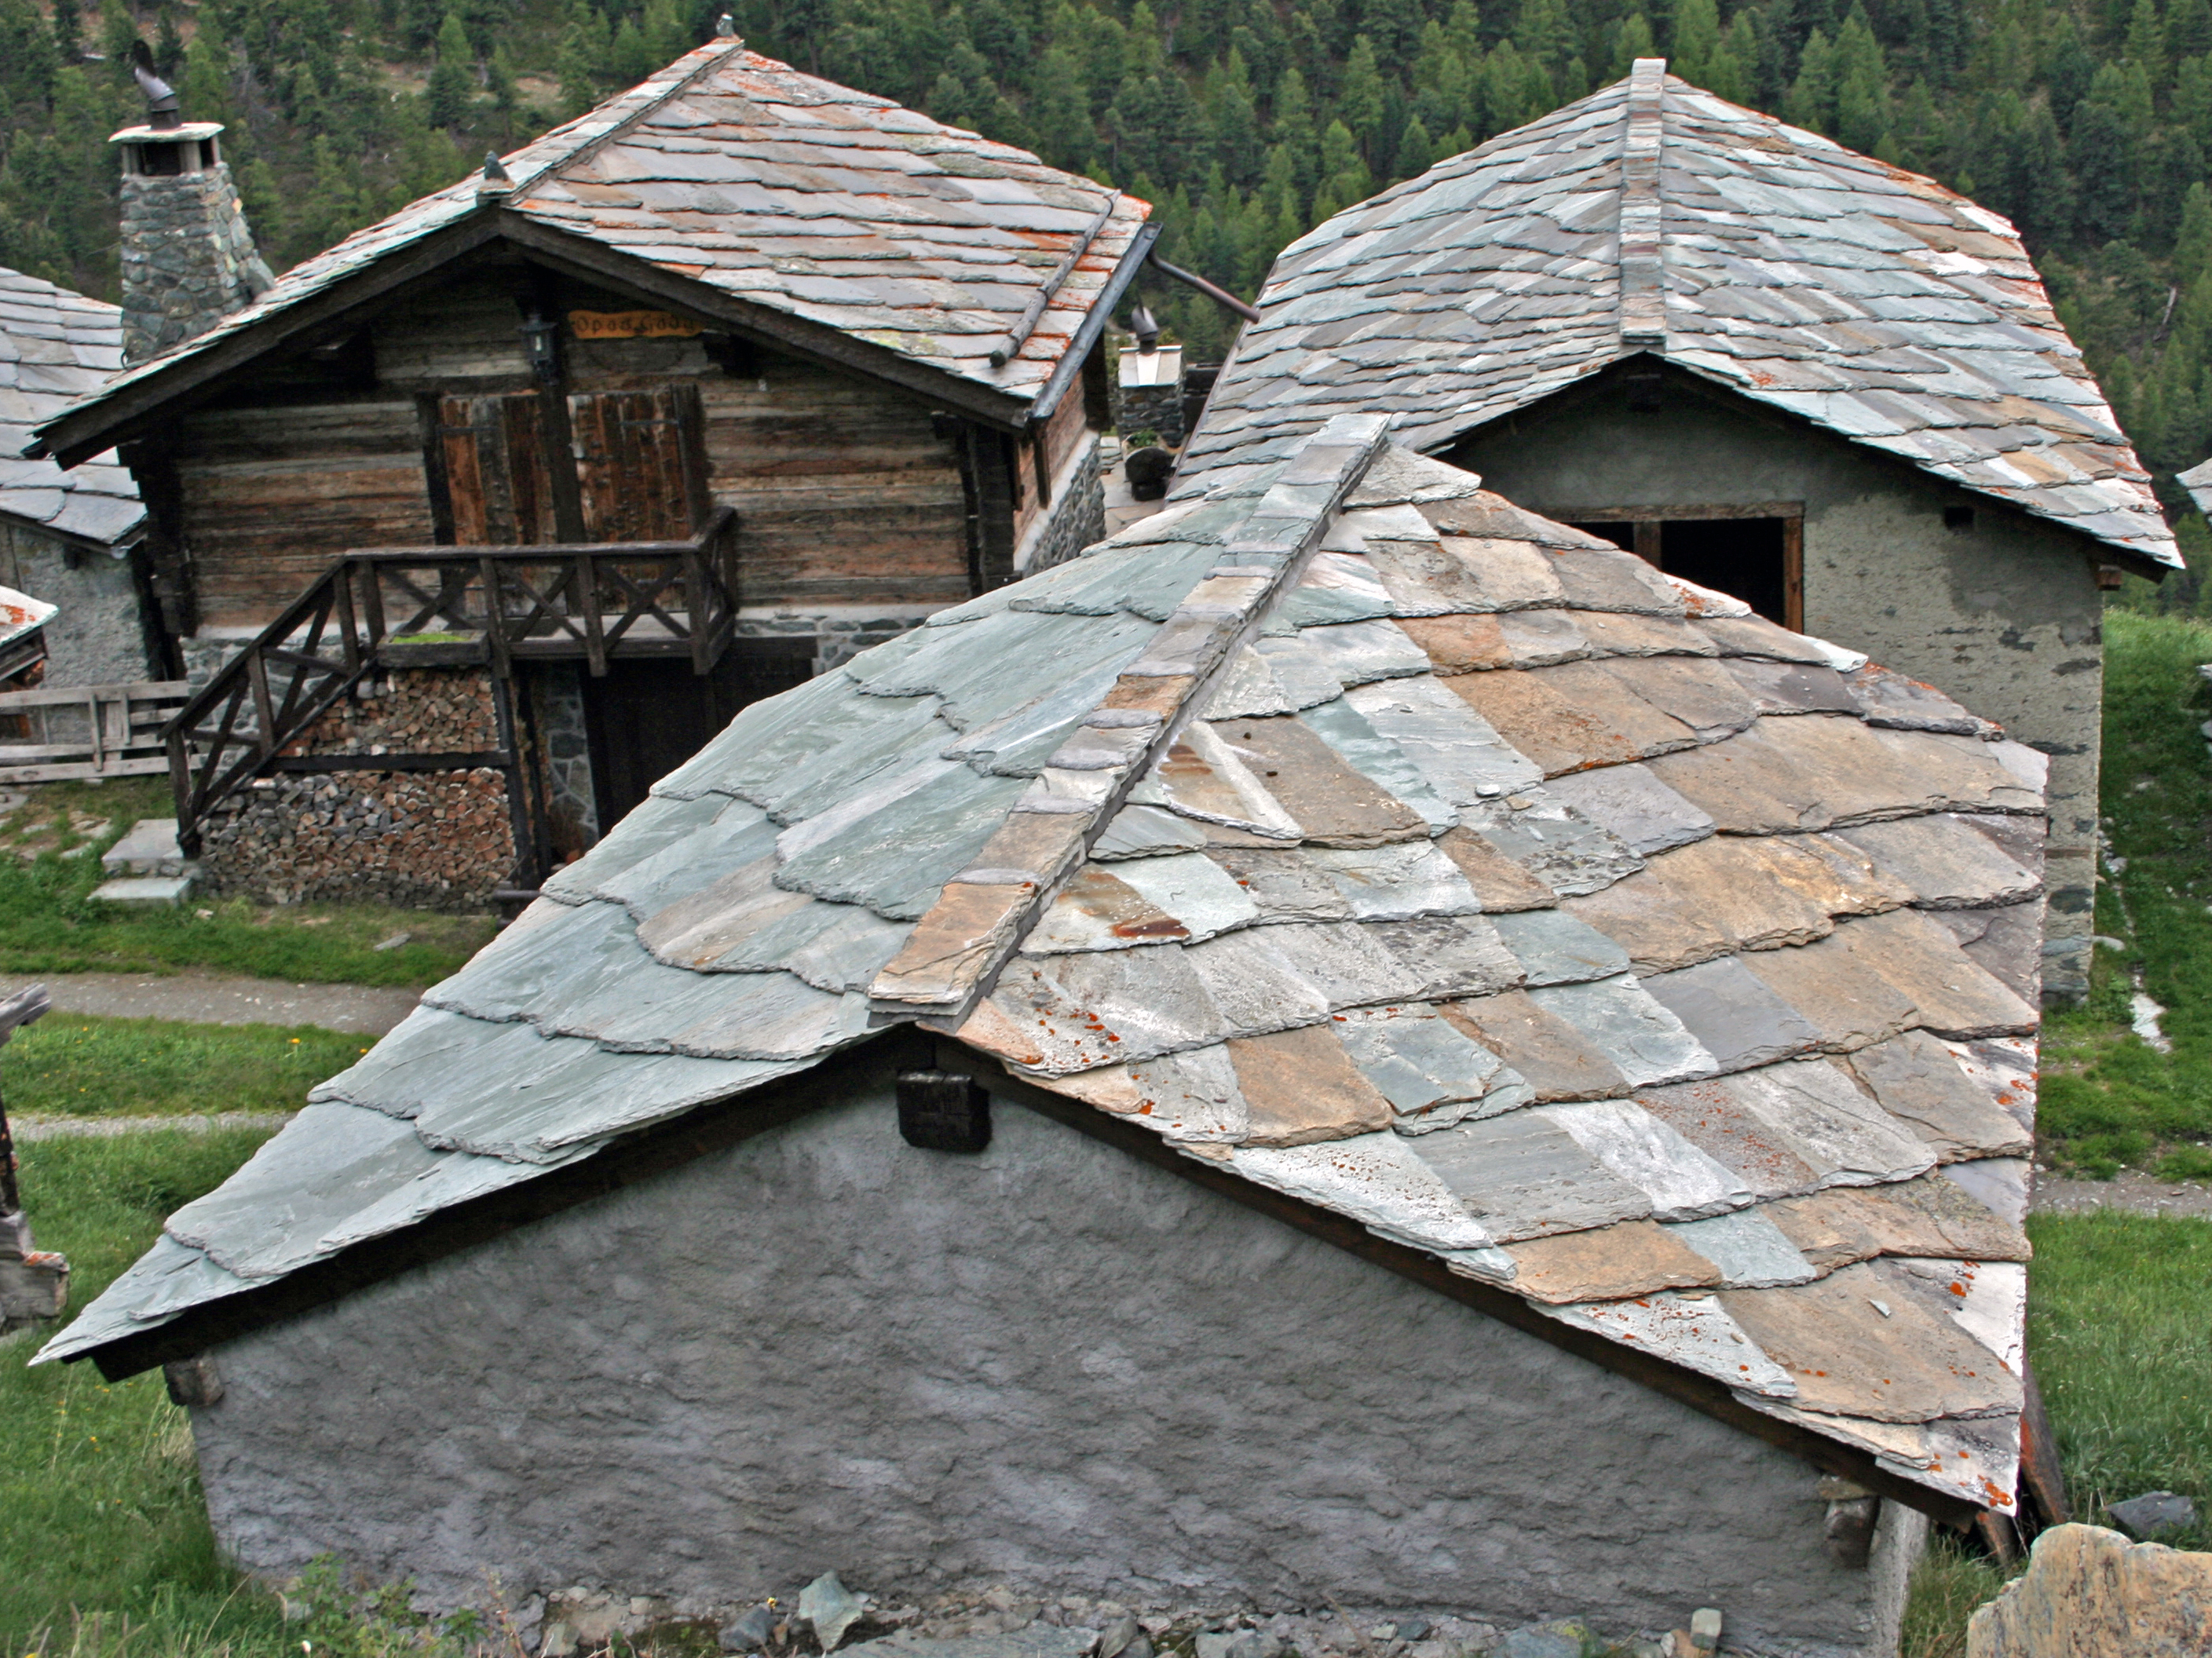 A I Roofing : Roofing tiles used slate